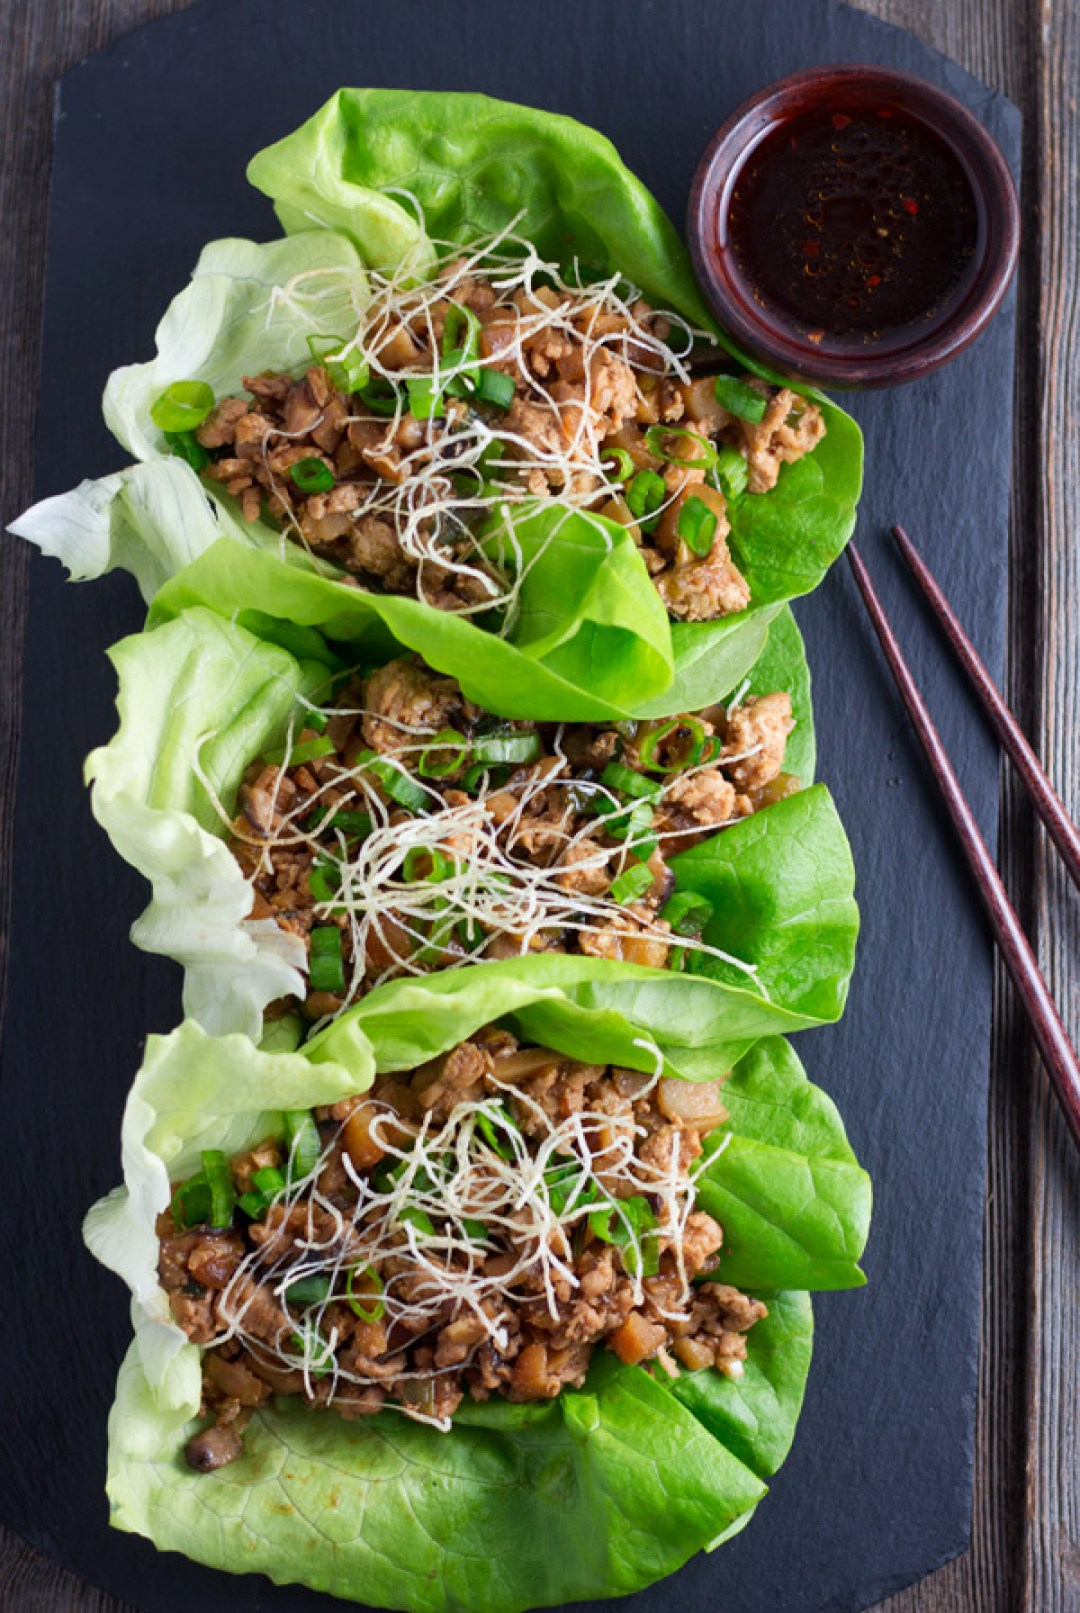 Chicken Lettuce Wraps is a delicious starter or meal. The combination of chicken and the veggies is delightful. | www.butterandthings.com